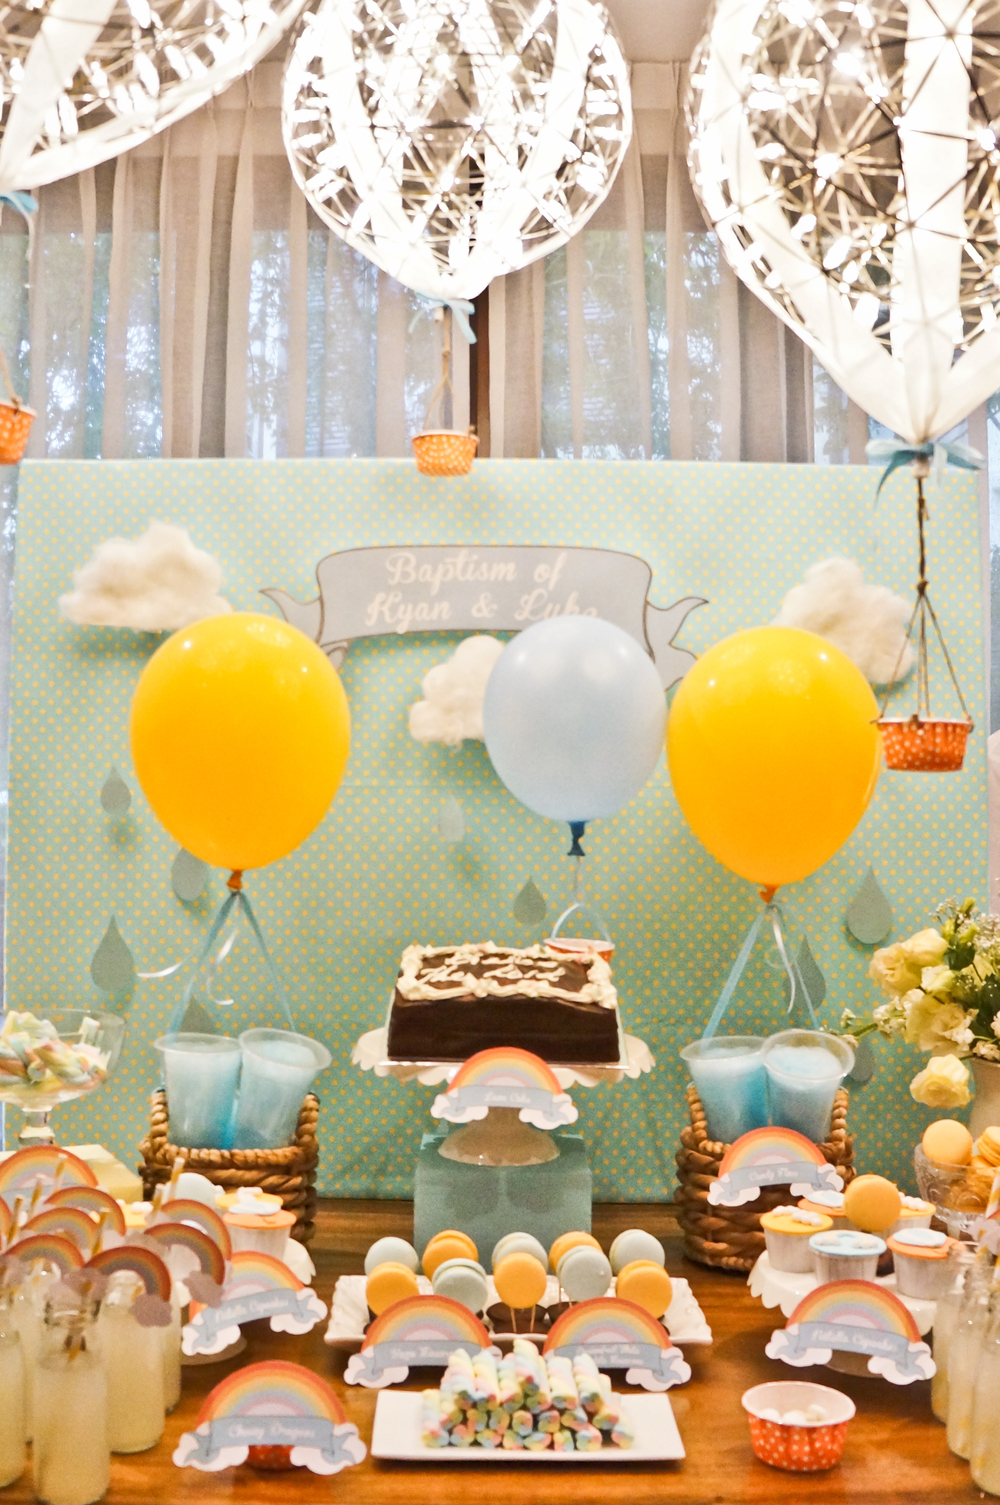 A rainbows and showers-themed dessert buffet. Our very versatile Moooi Raimond lights became hot air balloons!